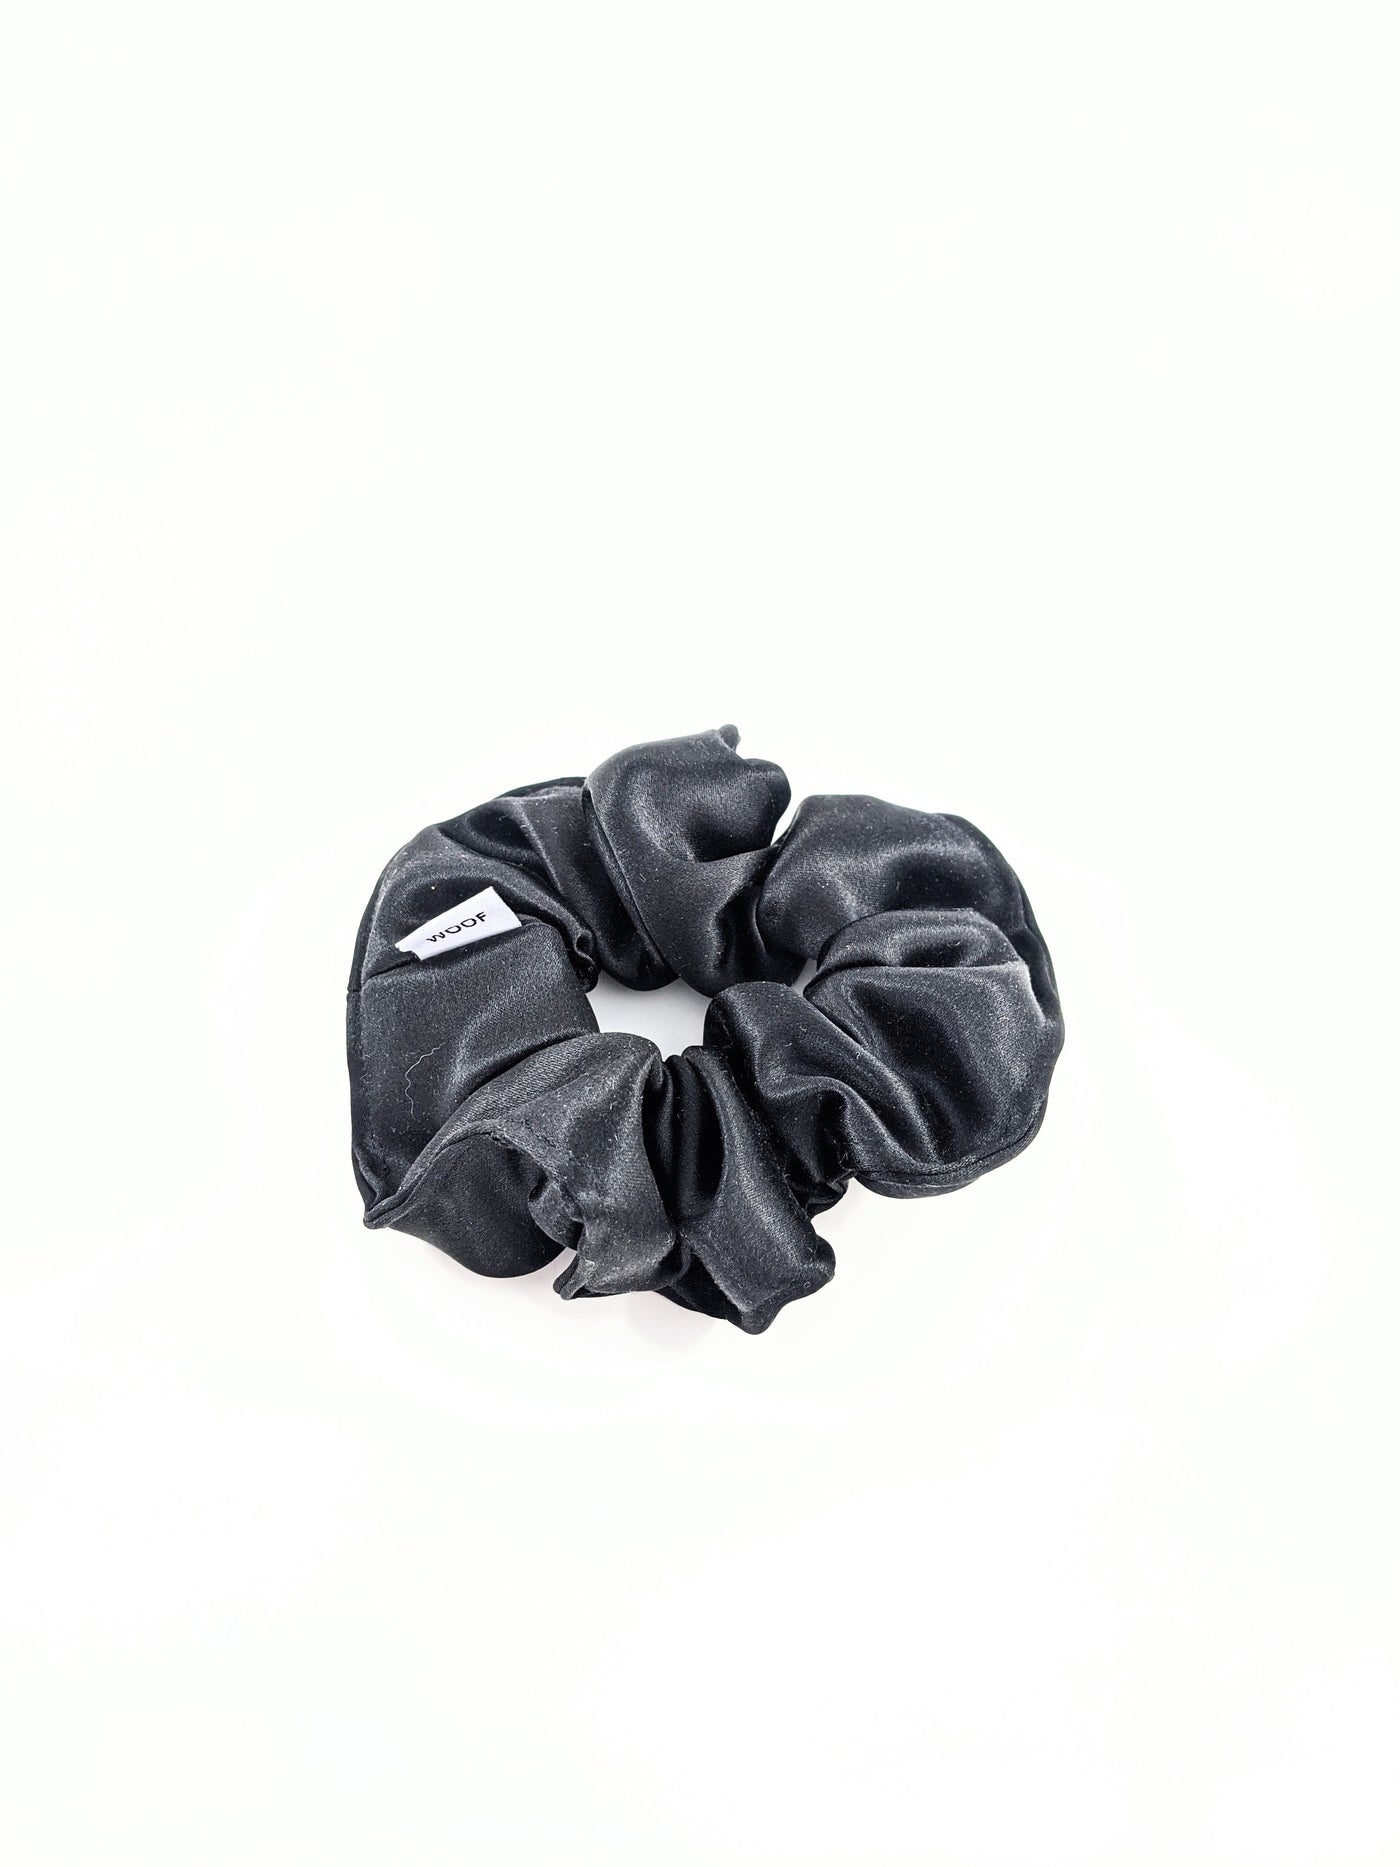 Silk hair scrunchies by Hair of the Dog available at Local Assembly